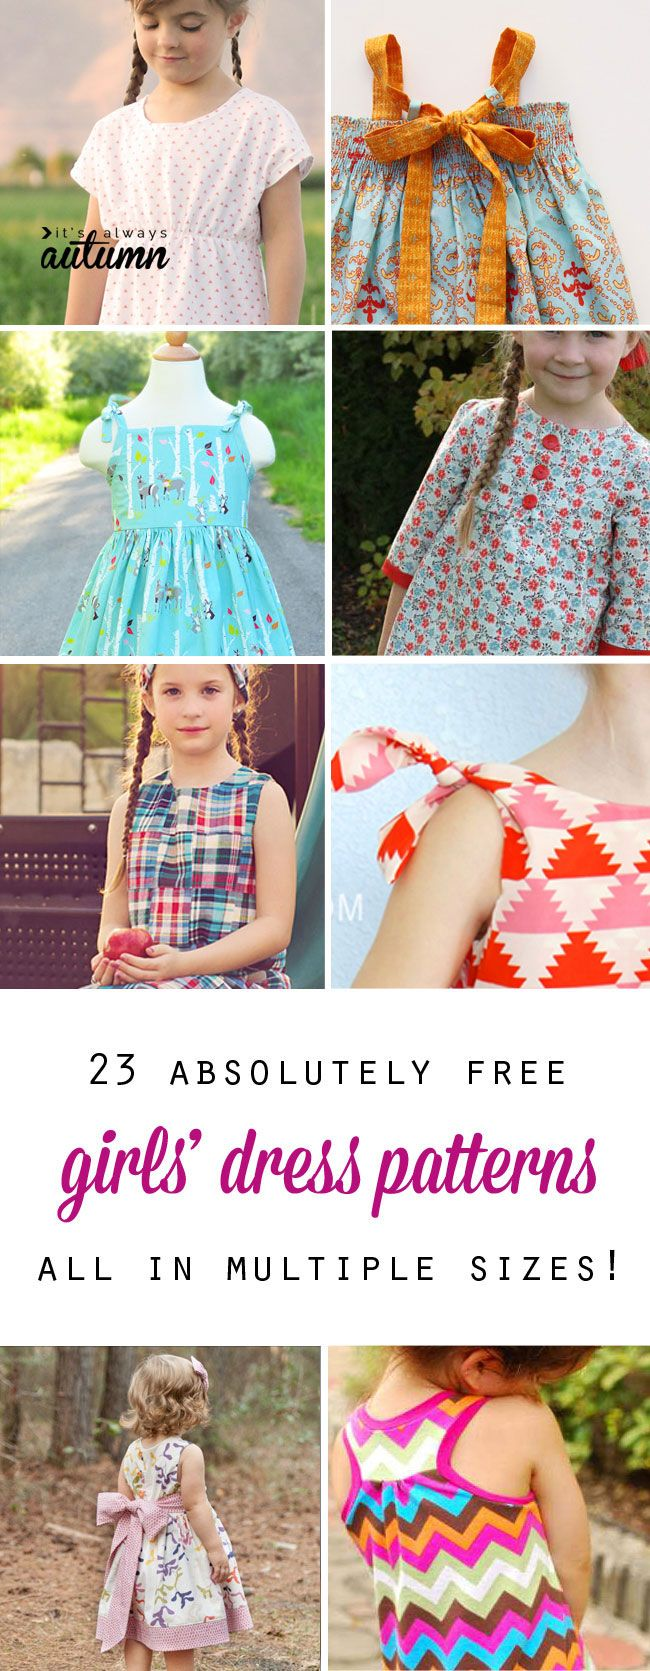 Free girls dress patterns charity sewing girl dress patterns free girls dress patterns charity sewing its always autumn huge collection of free girls dress patterns in multiple sizes great for personal or jeuxipadfo Image collections